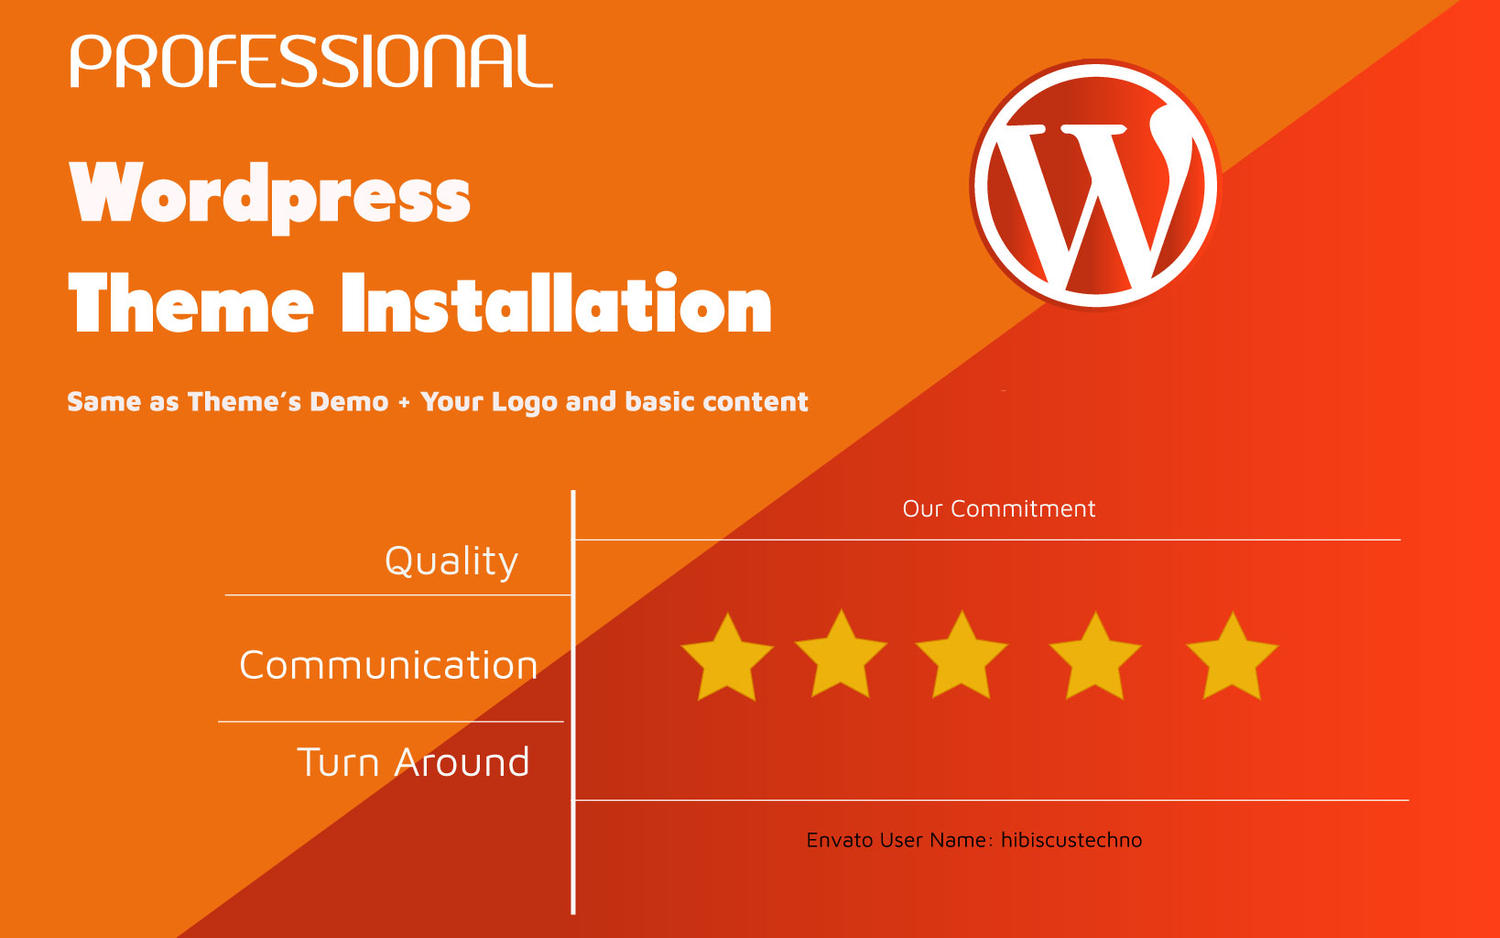 Wordpress Theme Installation  by hibiscustechno - 110415